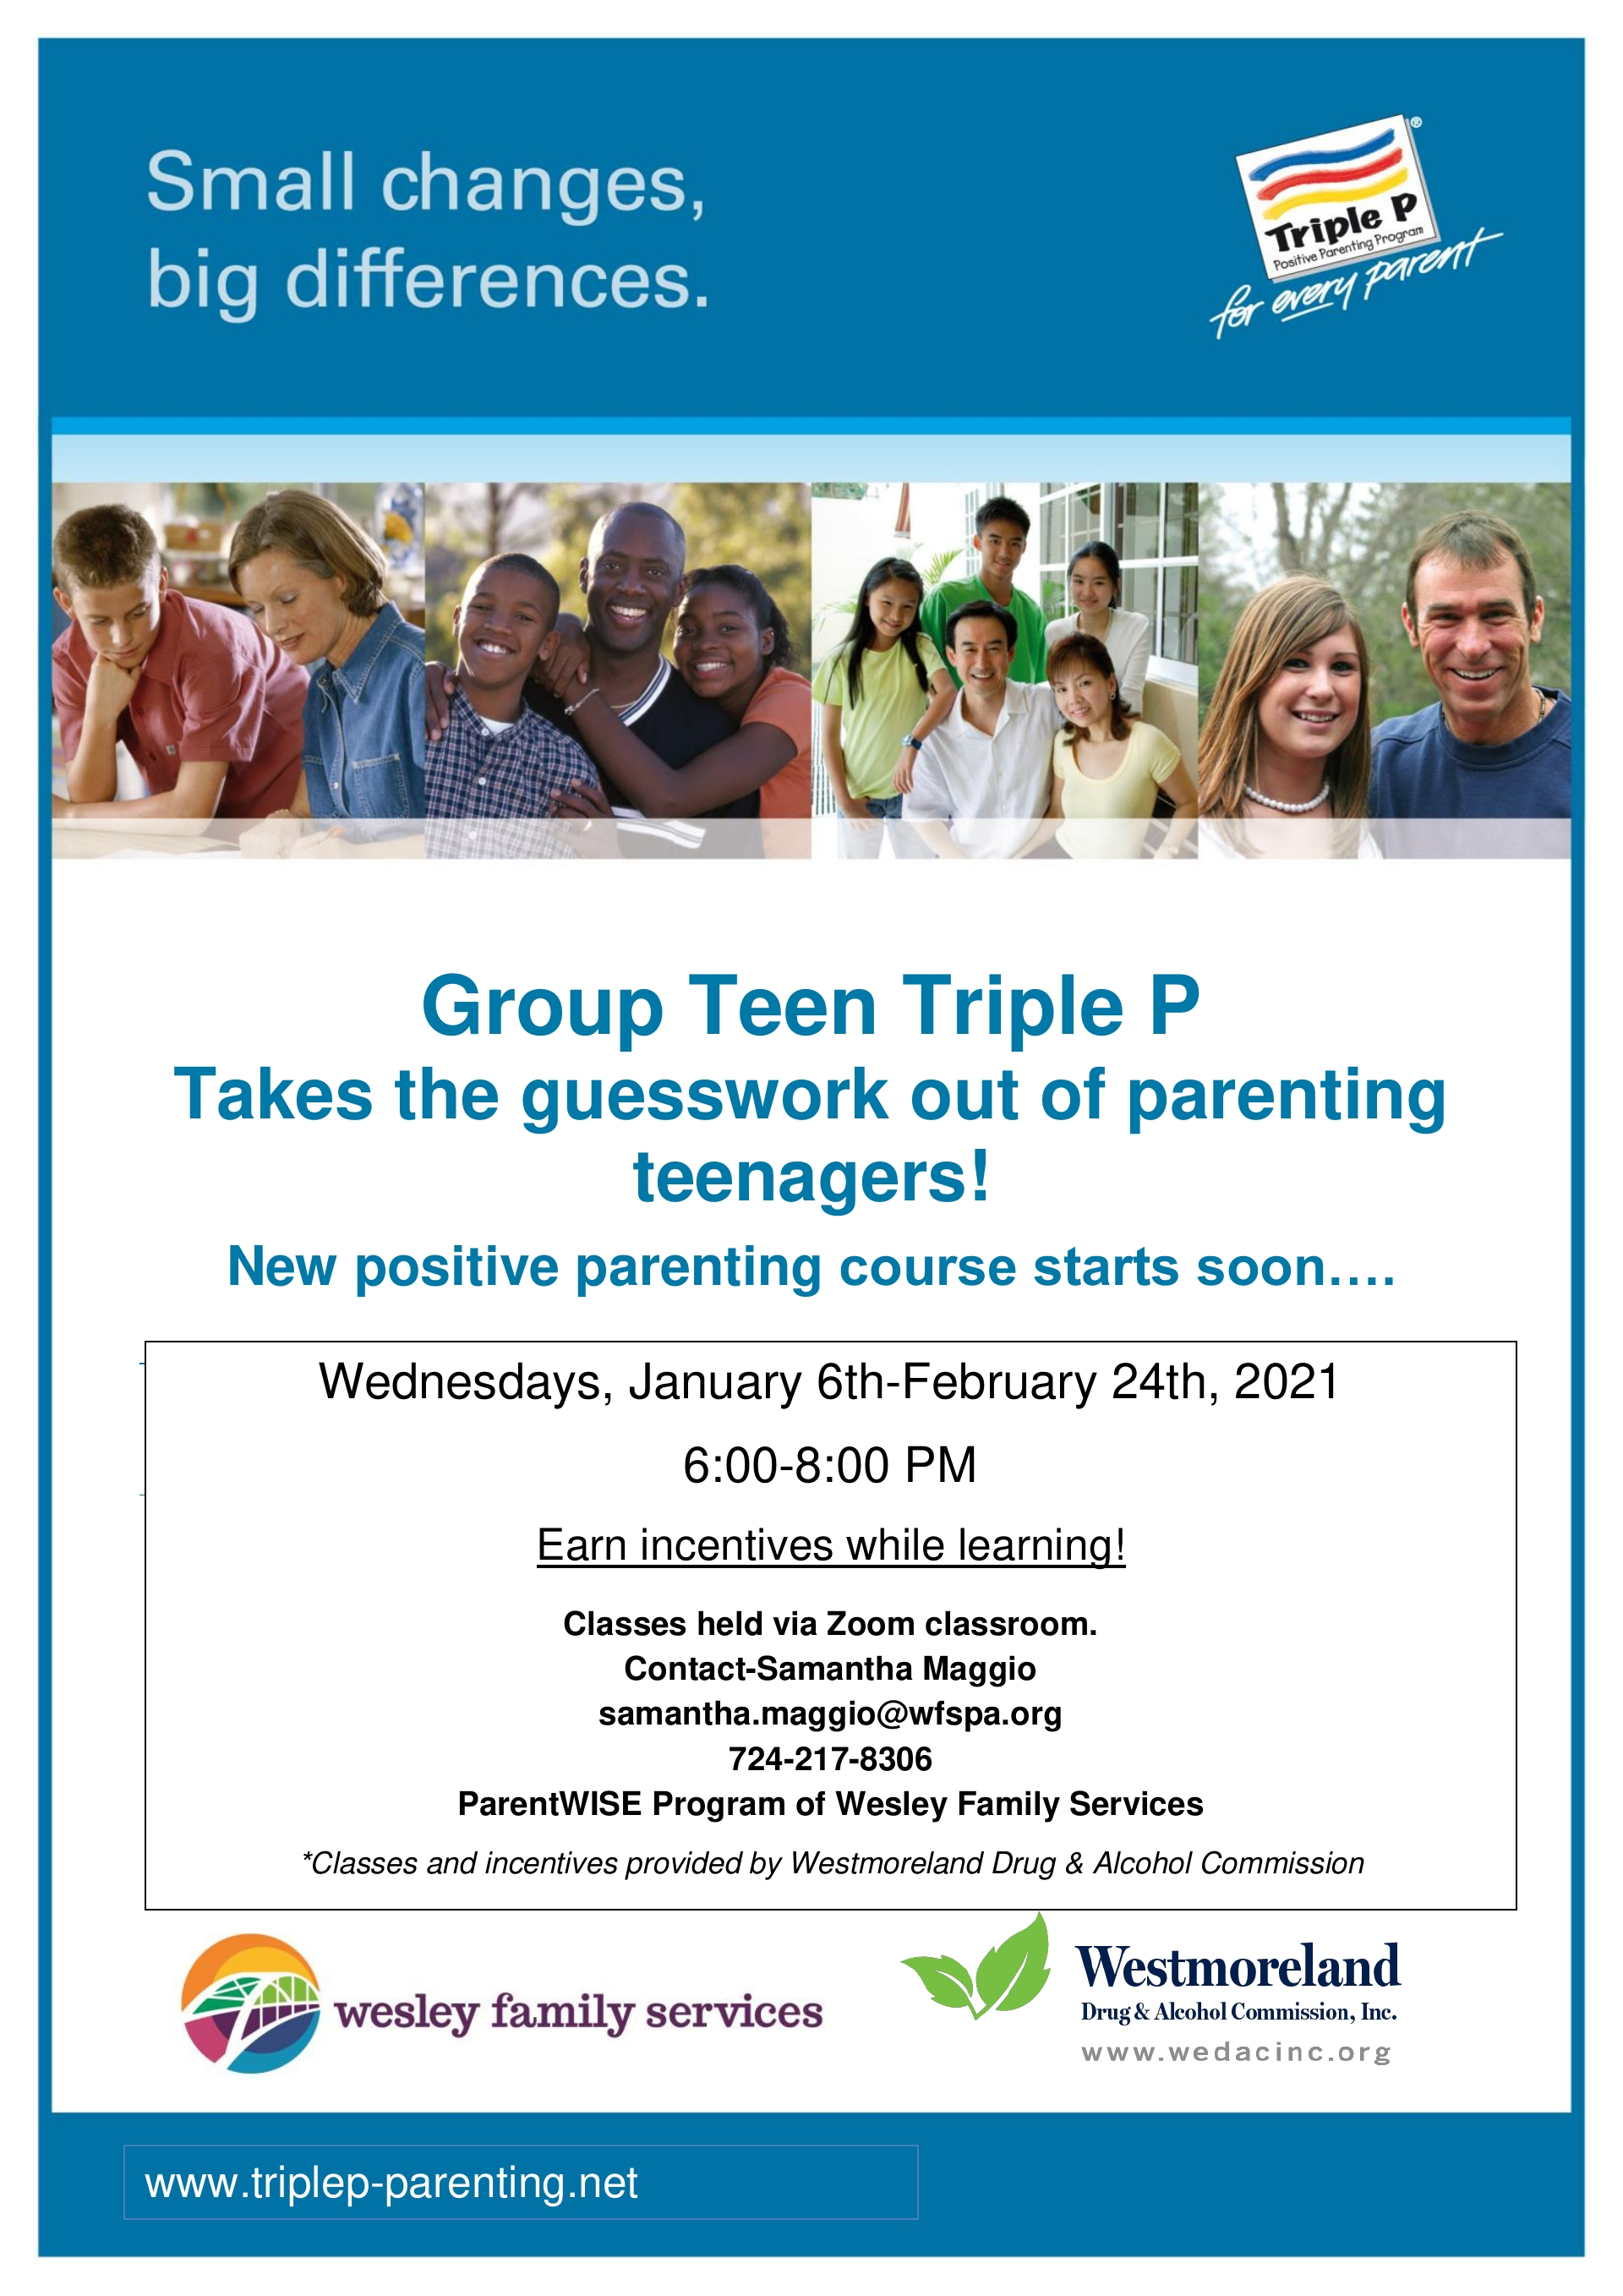 PARENTING TEENS! Parenting Classes January 2021! Armstrong, Allegheny, Butler, Fayette, Westmoreland